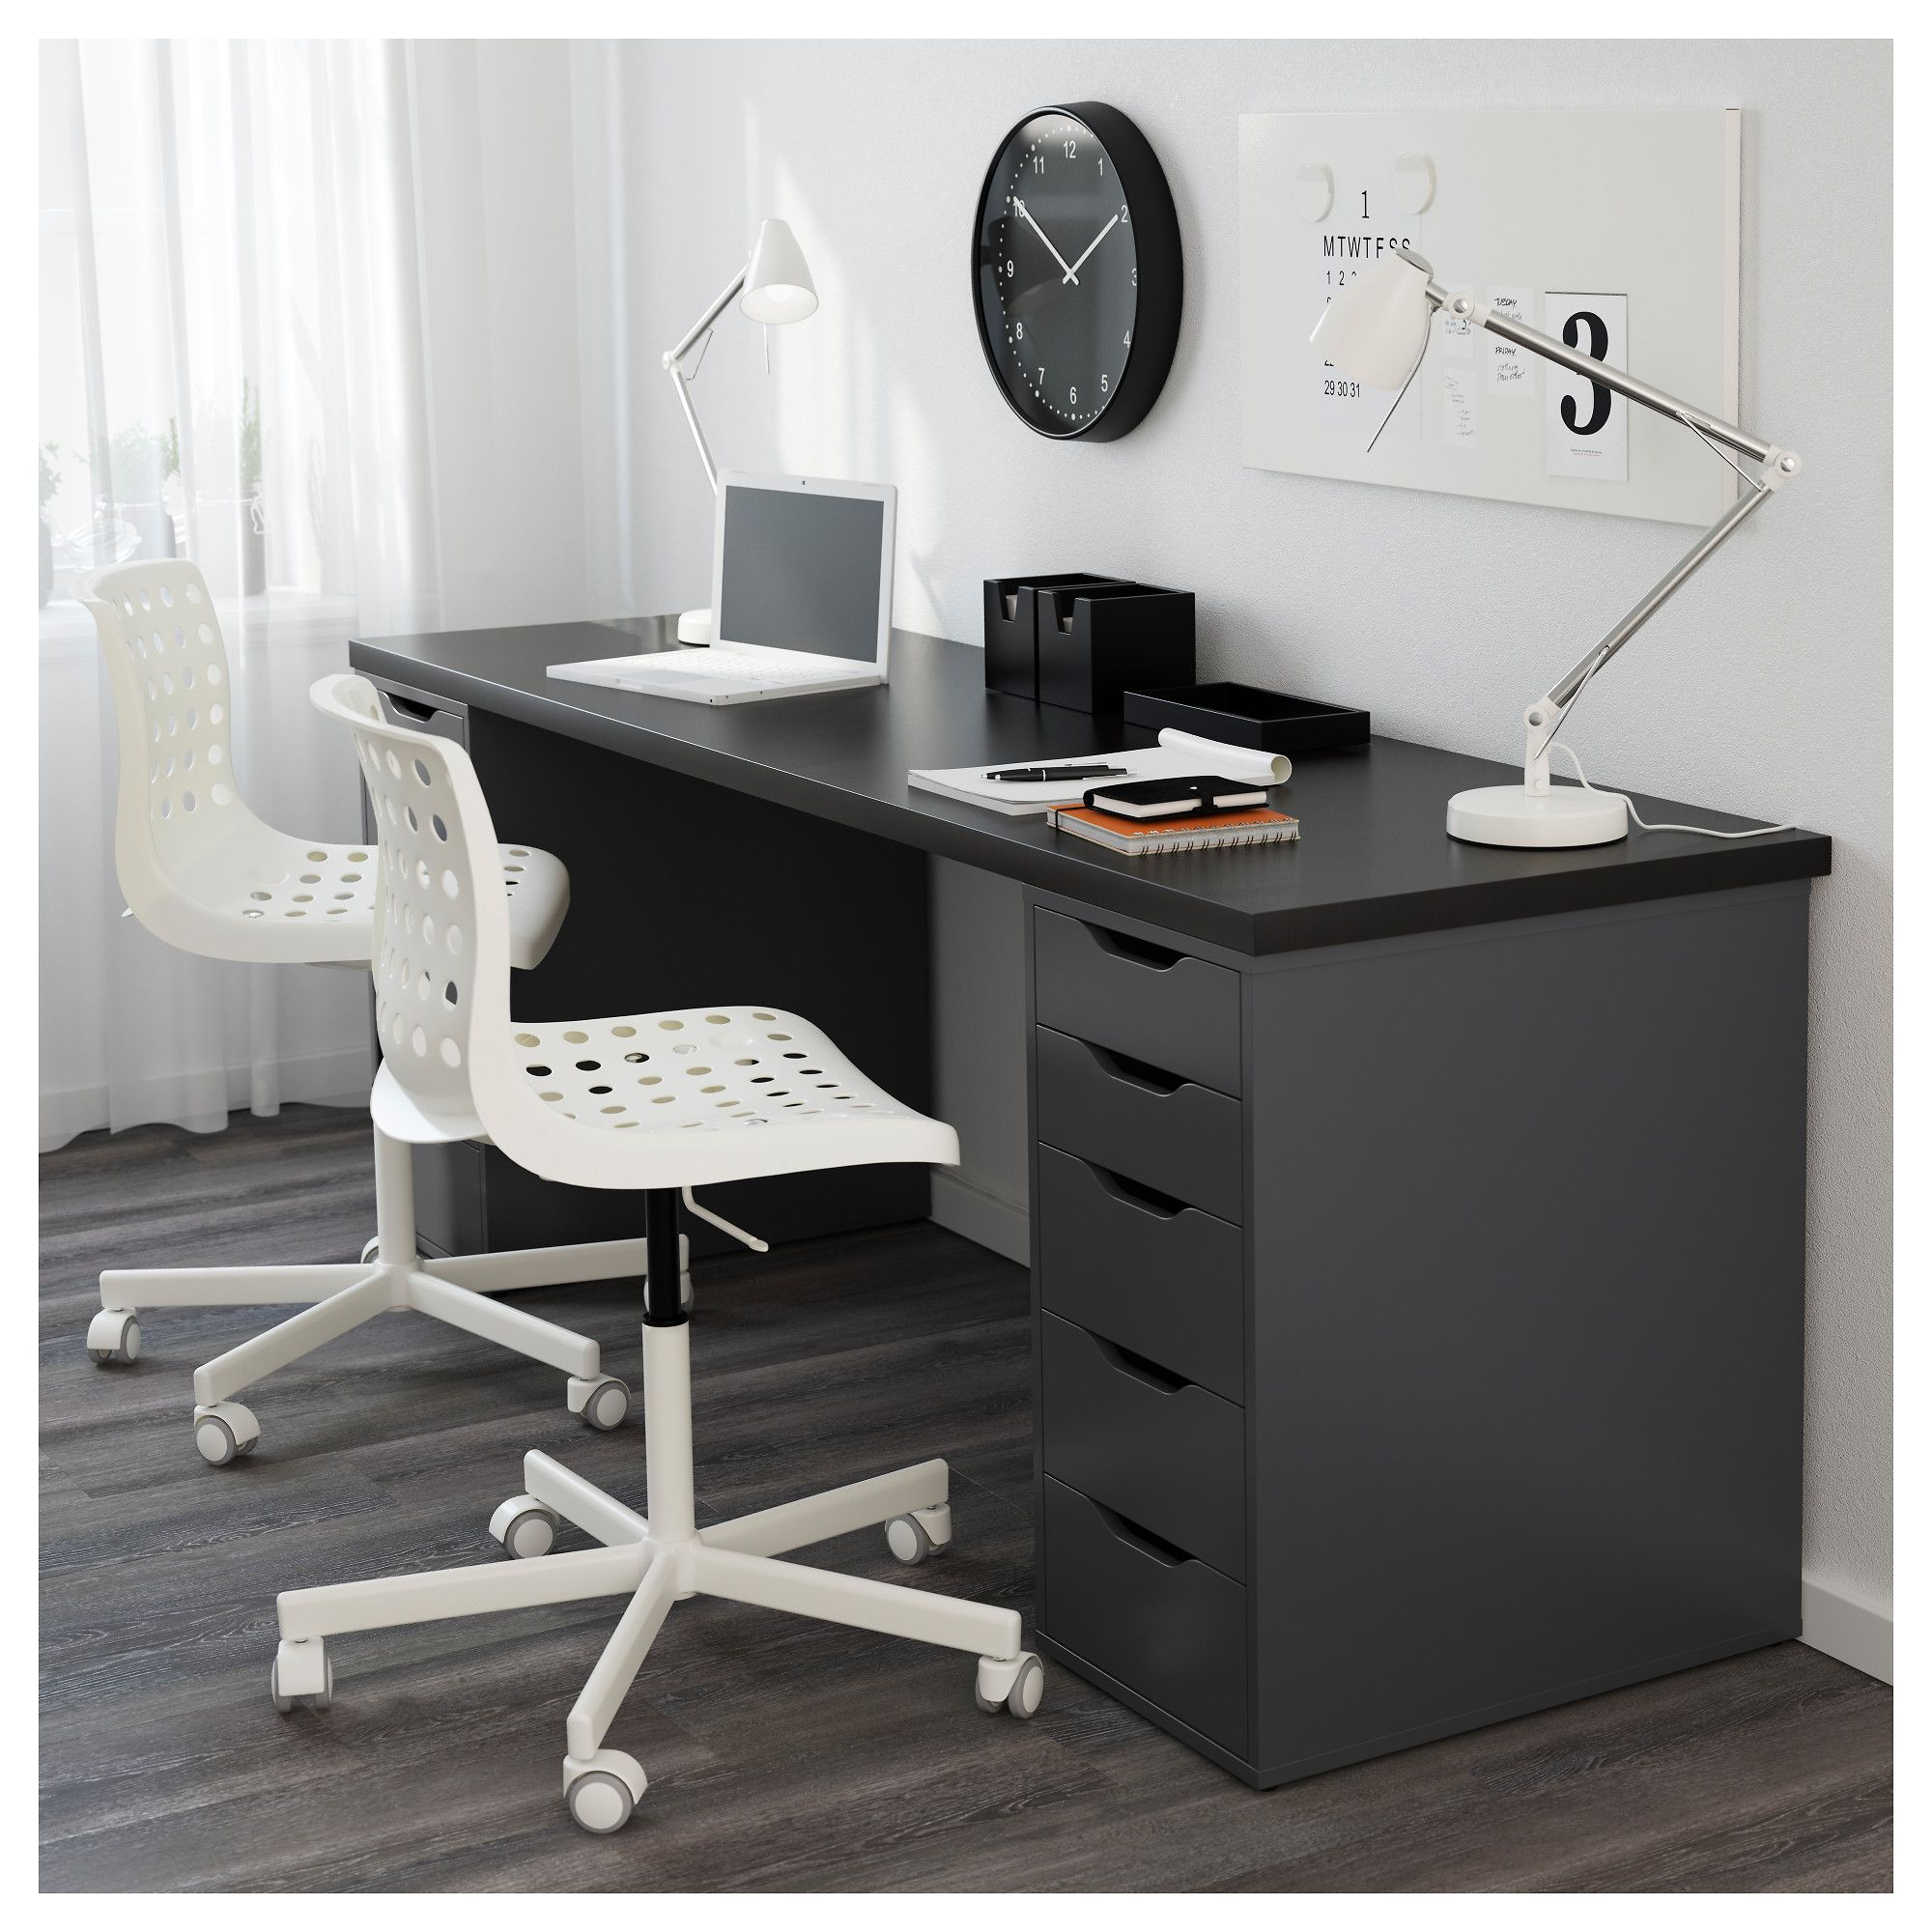 Beau IKEA   ALEX, Drawer Unit/drop File Storage, White, , Drawer Stops Prevent  The Drawers From Being Pulled Out Too Far.Can Be Placed Anywhere In The  Room ...